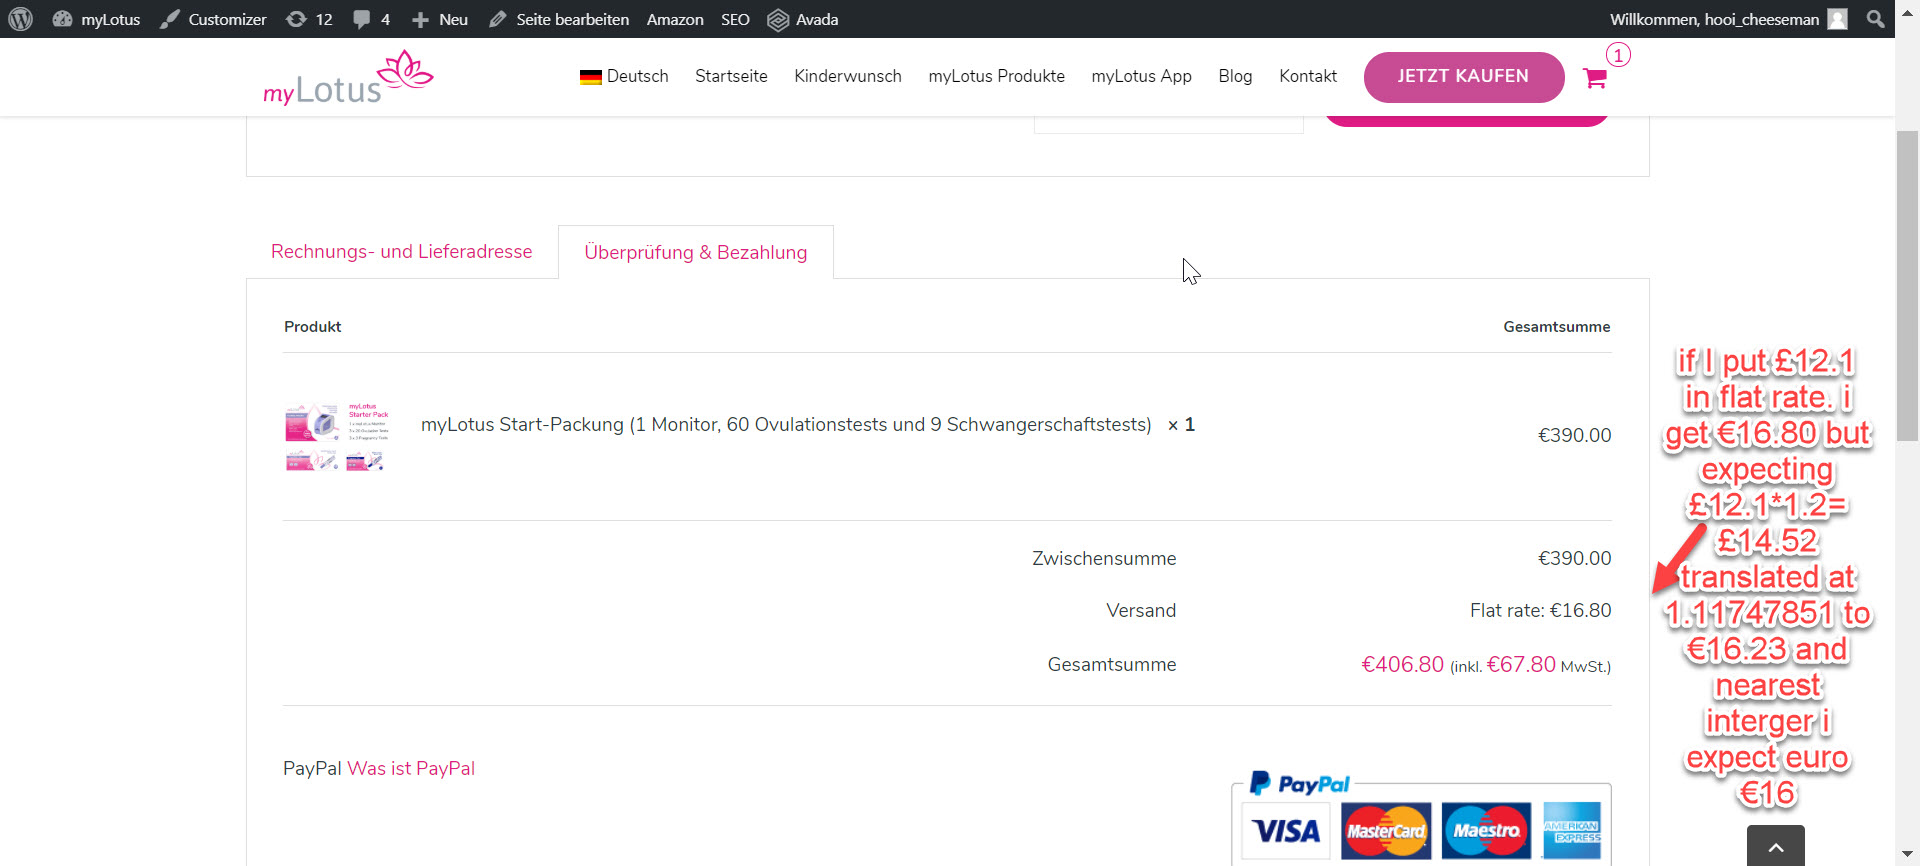 2.German shipping cost £12.1 getting €16.80.jpg